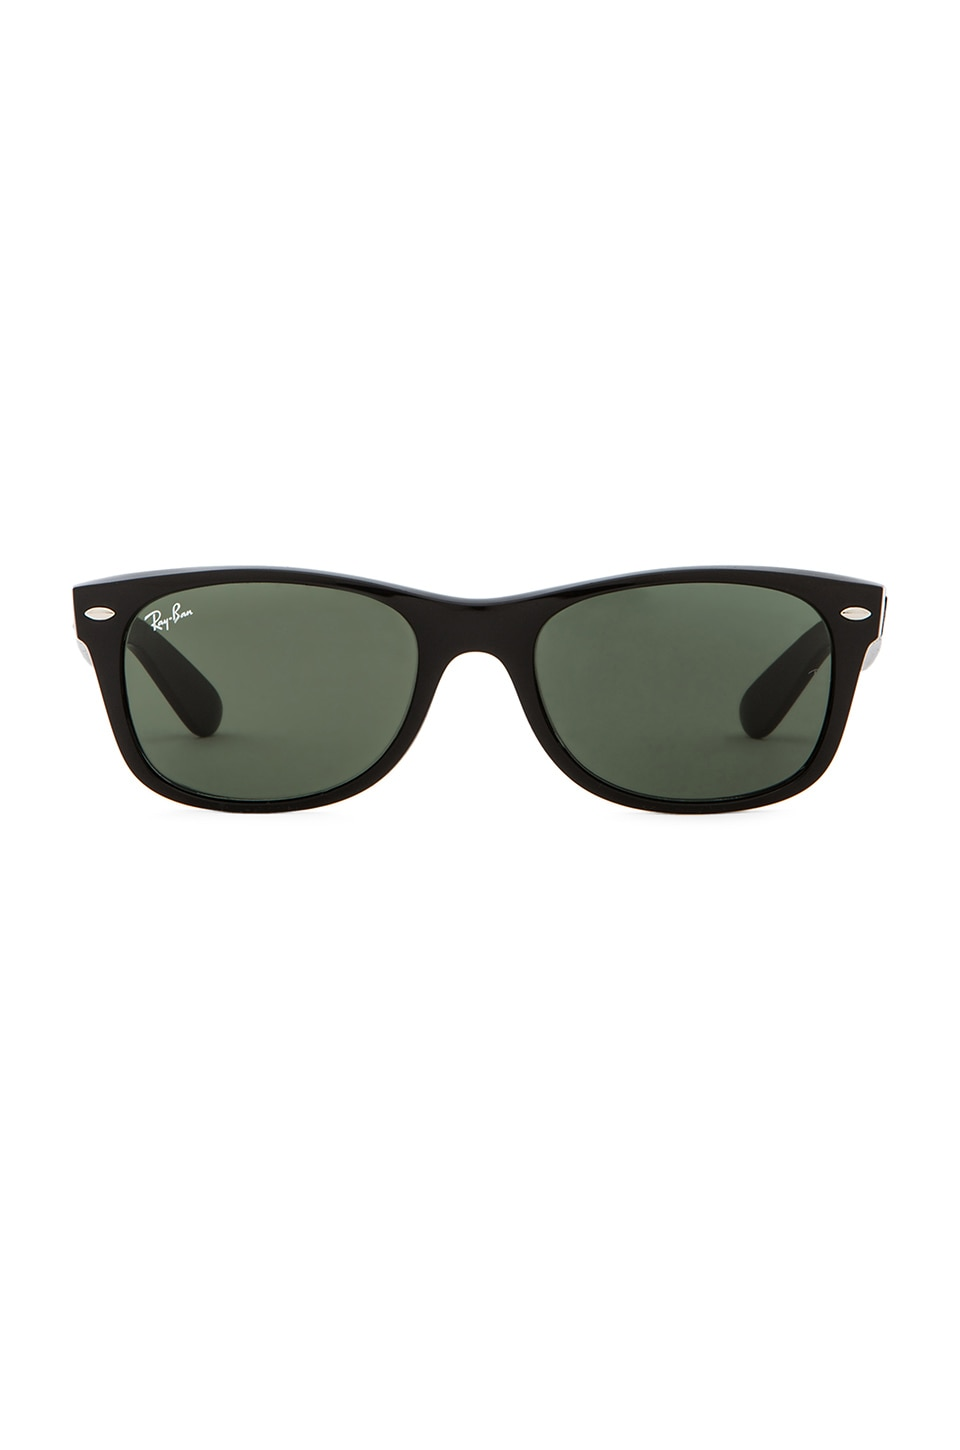 Ray-Ban New Wayfarer in Black